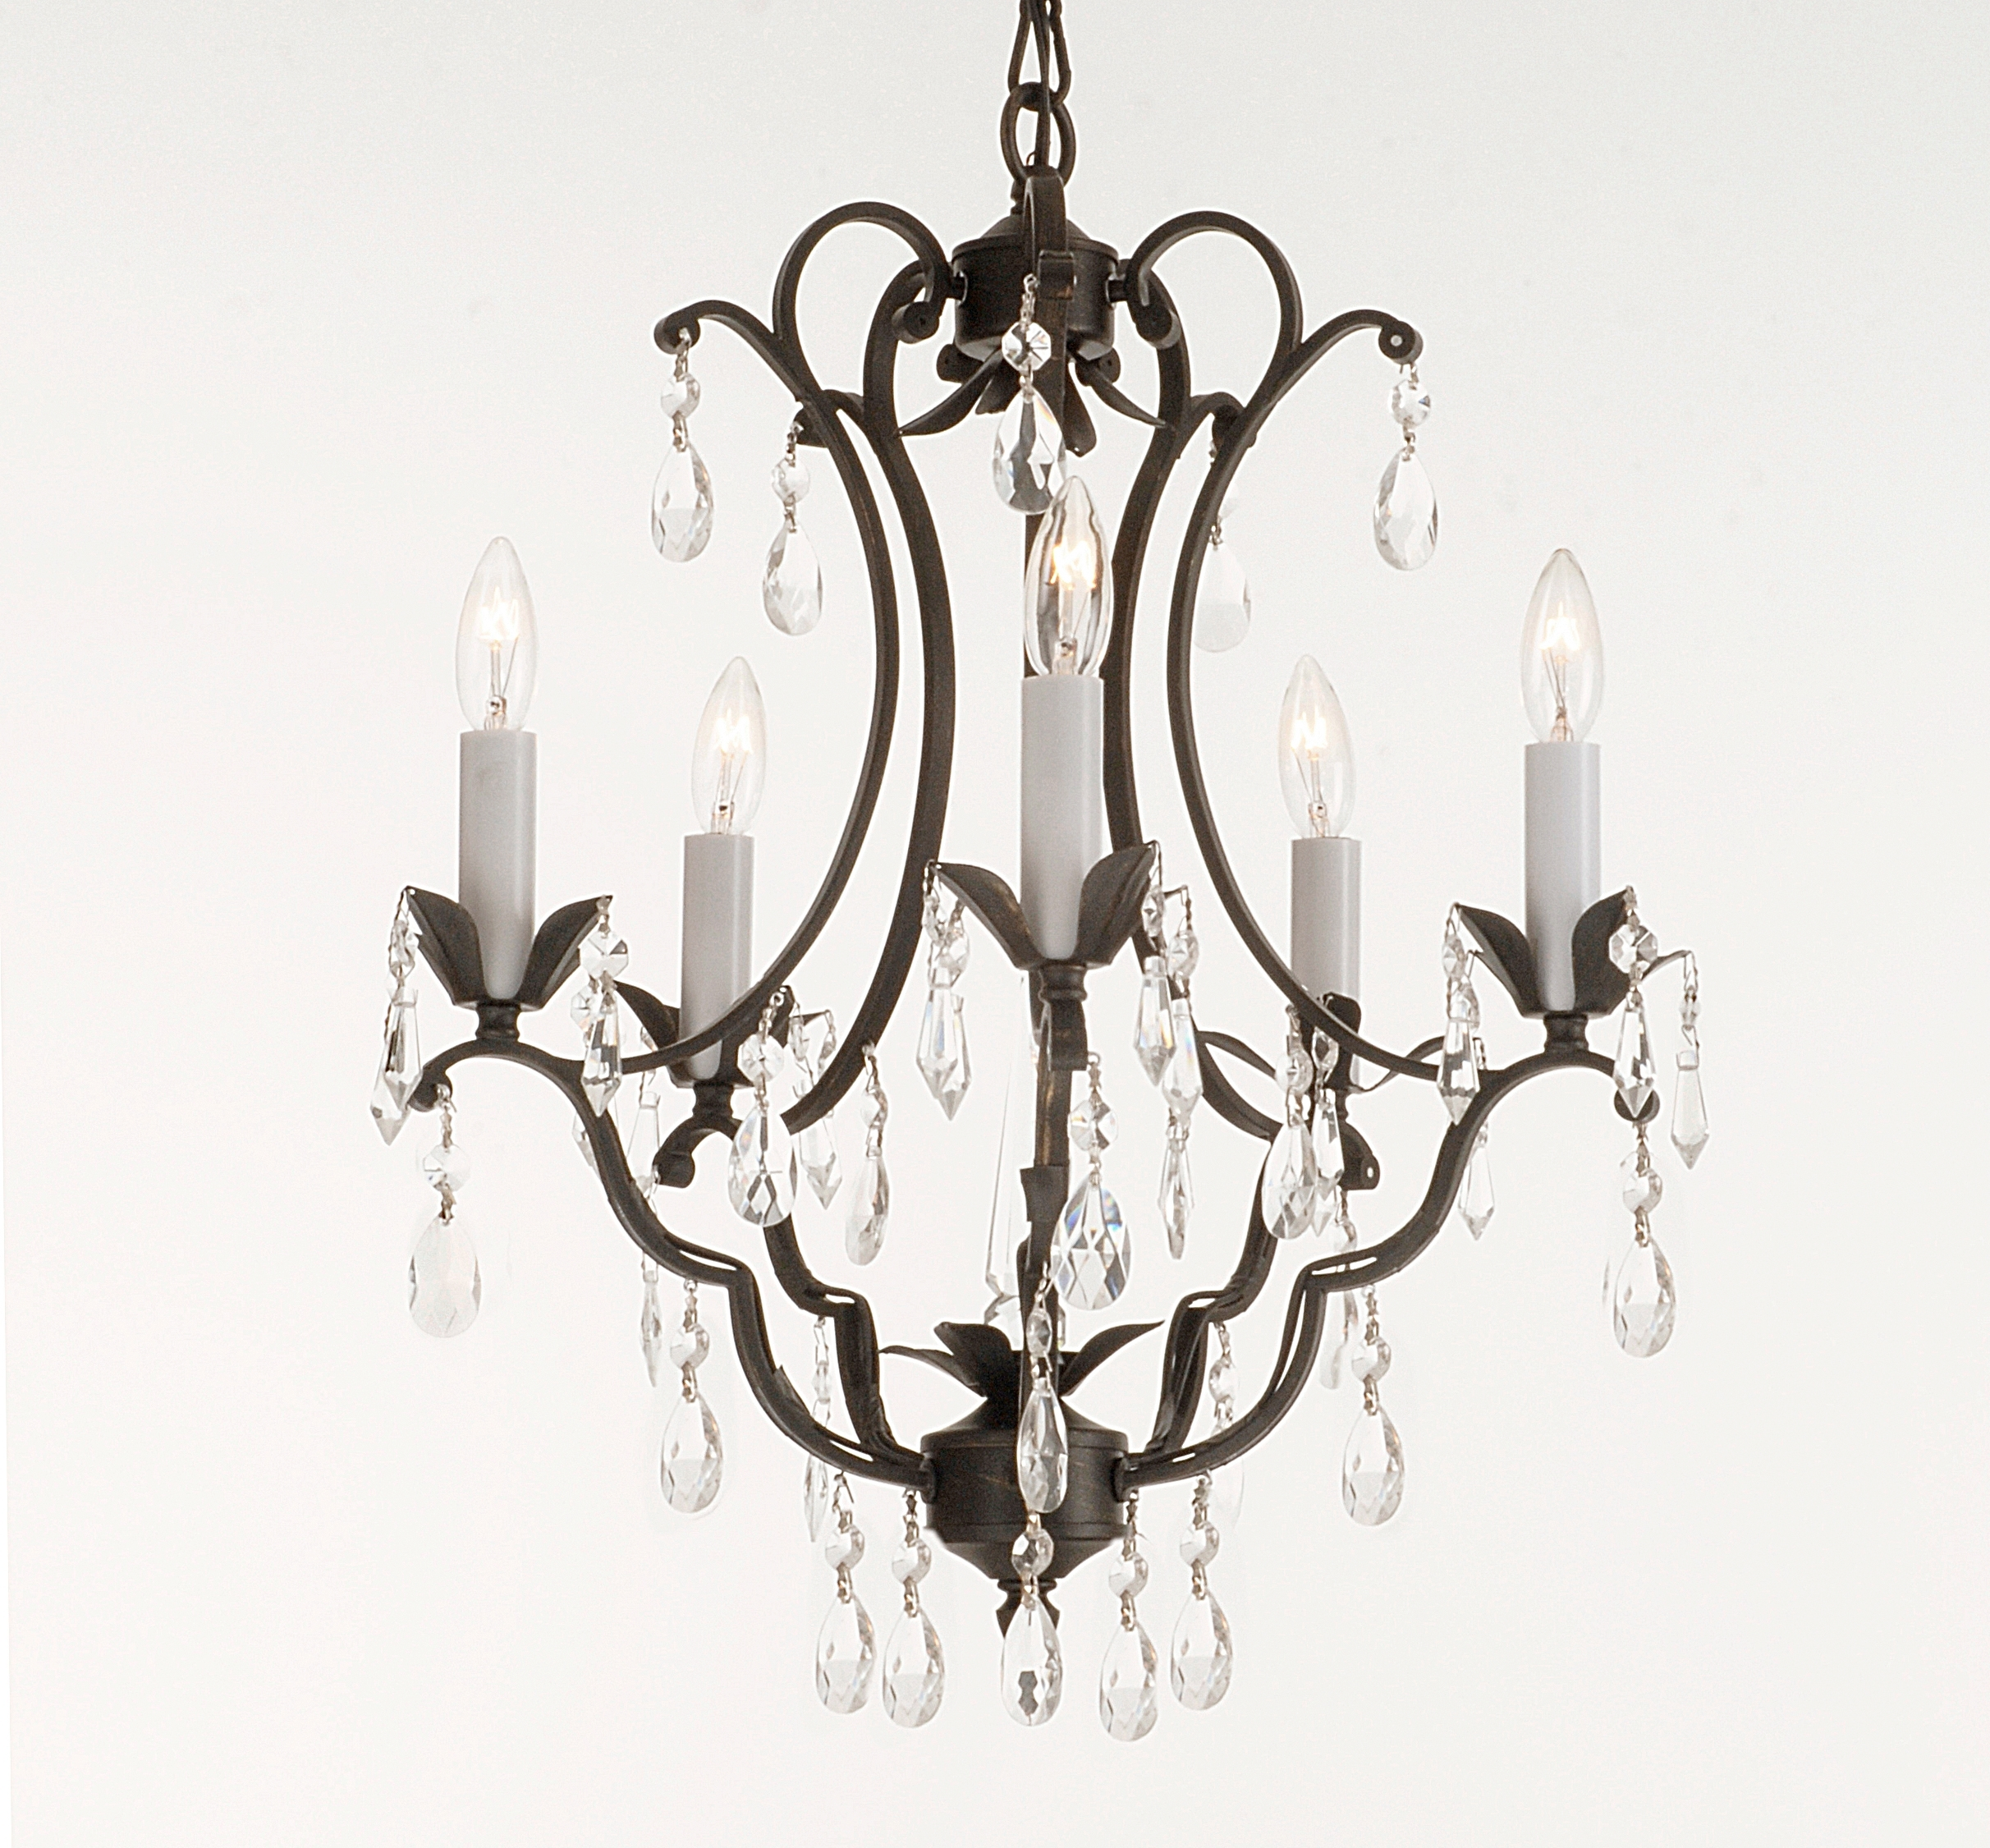 Light : Furniture Vintage Look Modern Black Wrought Iron Chandeliers Regarding Most Recent Candle Look Chandeliers (View 16 of 20)